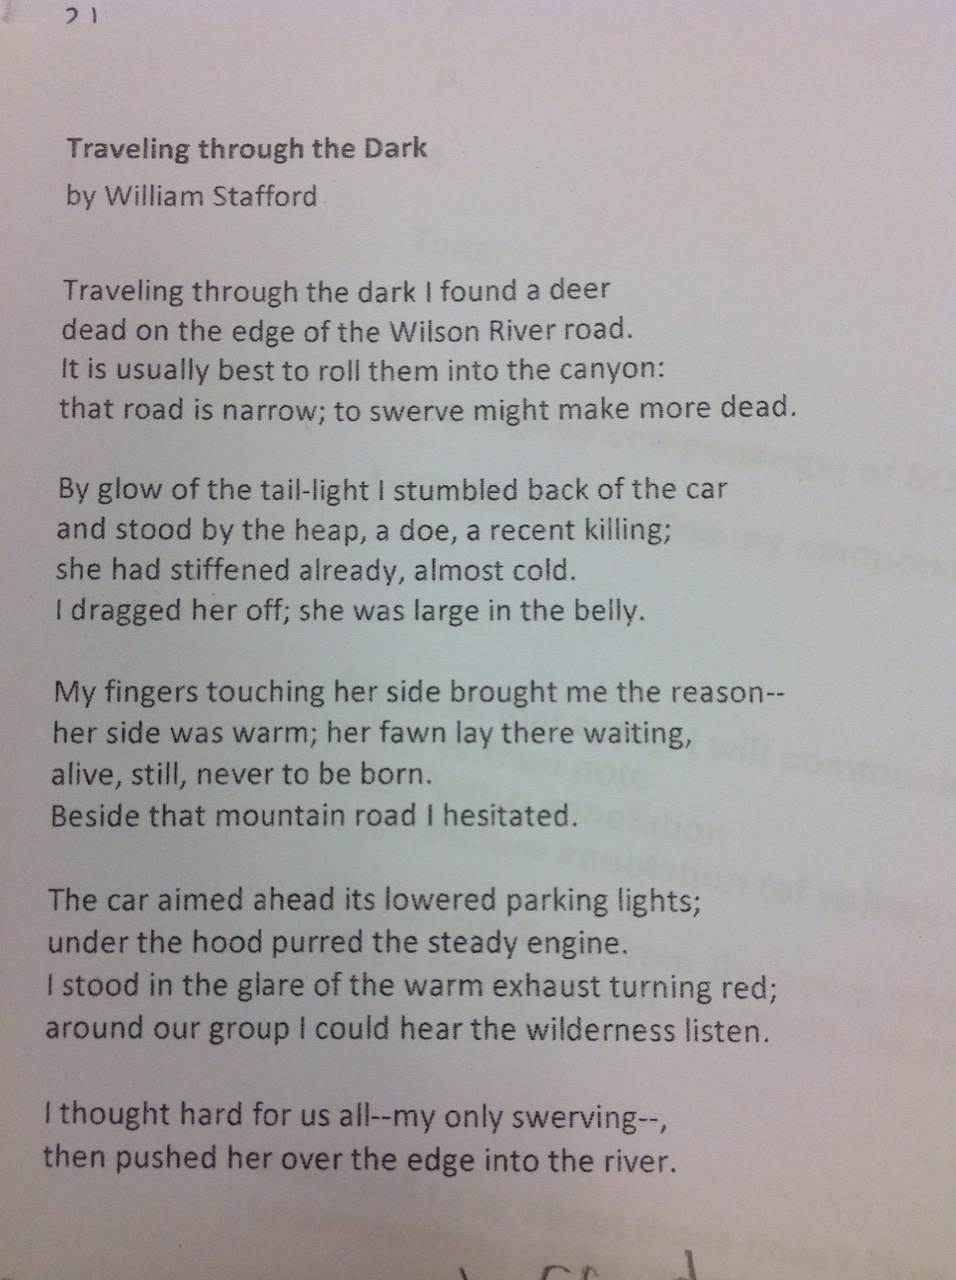 traveling through the dark essay Traveling through the dark by william stafford traveling through the dark by william stafford is the most popular and frequently anthologized.